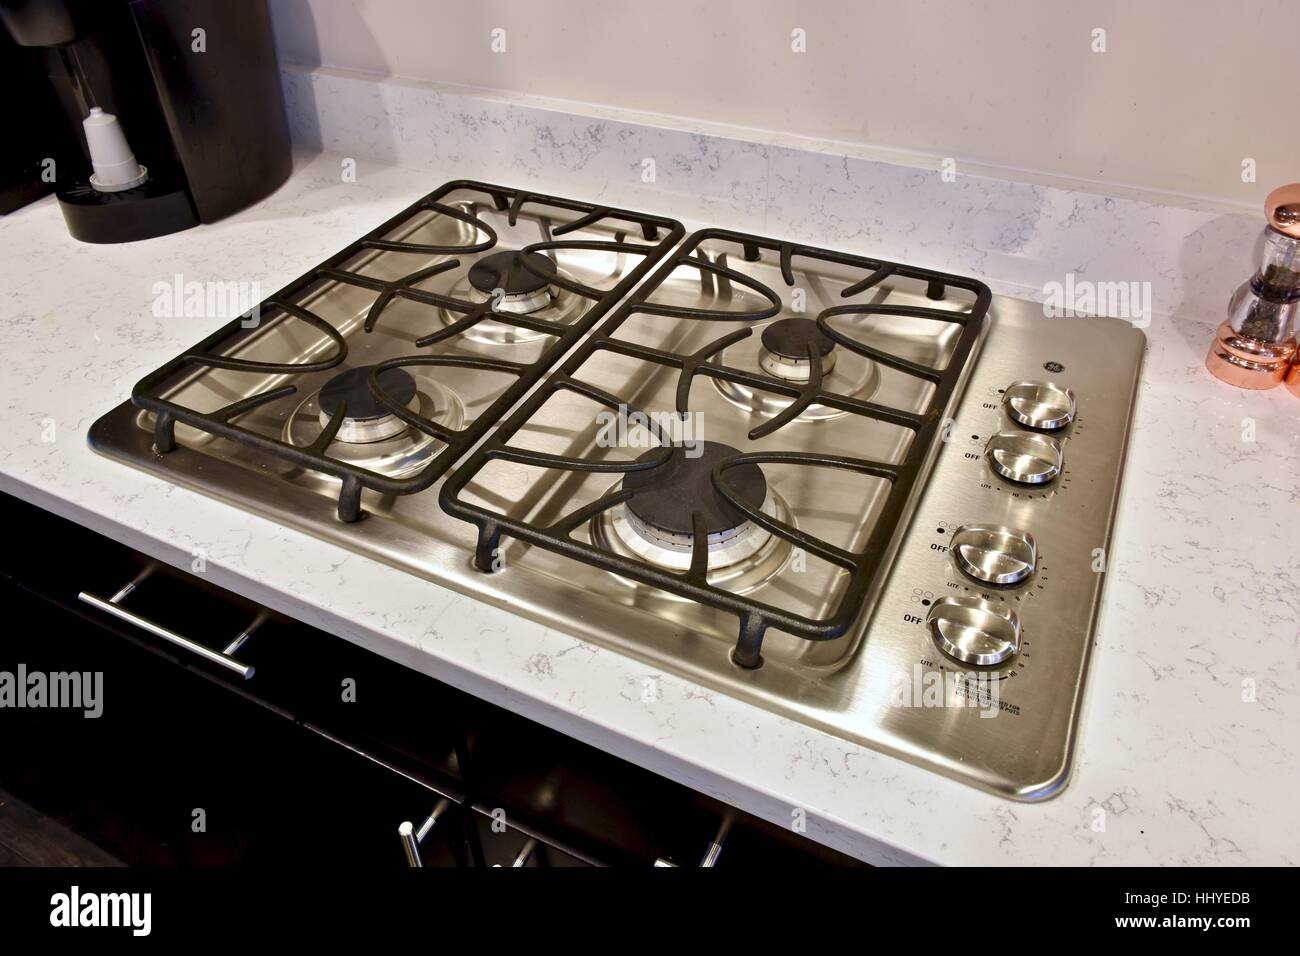 A stove top in a modern kitchen Stock Photo: 131525783 - Alamy